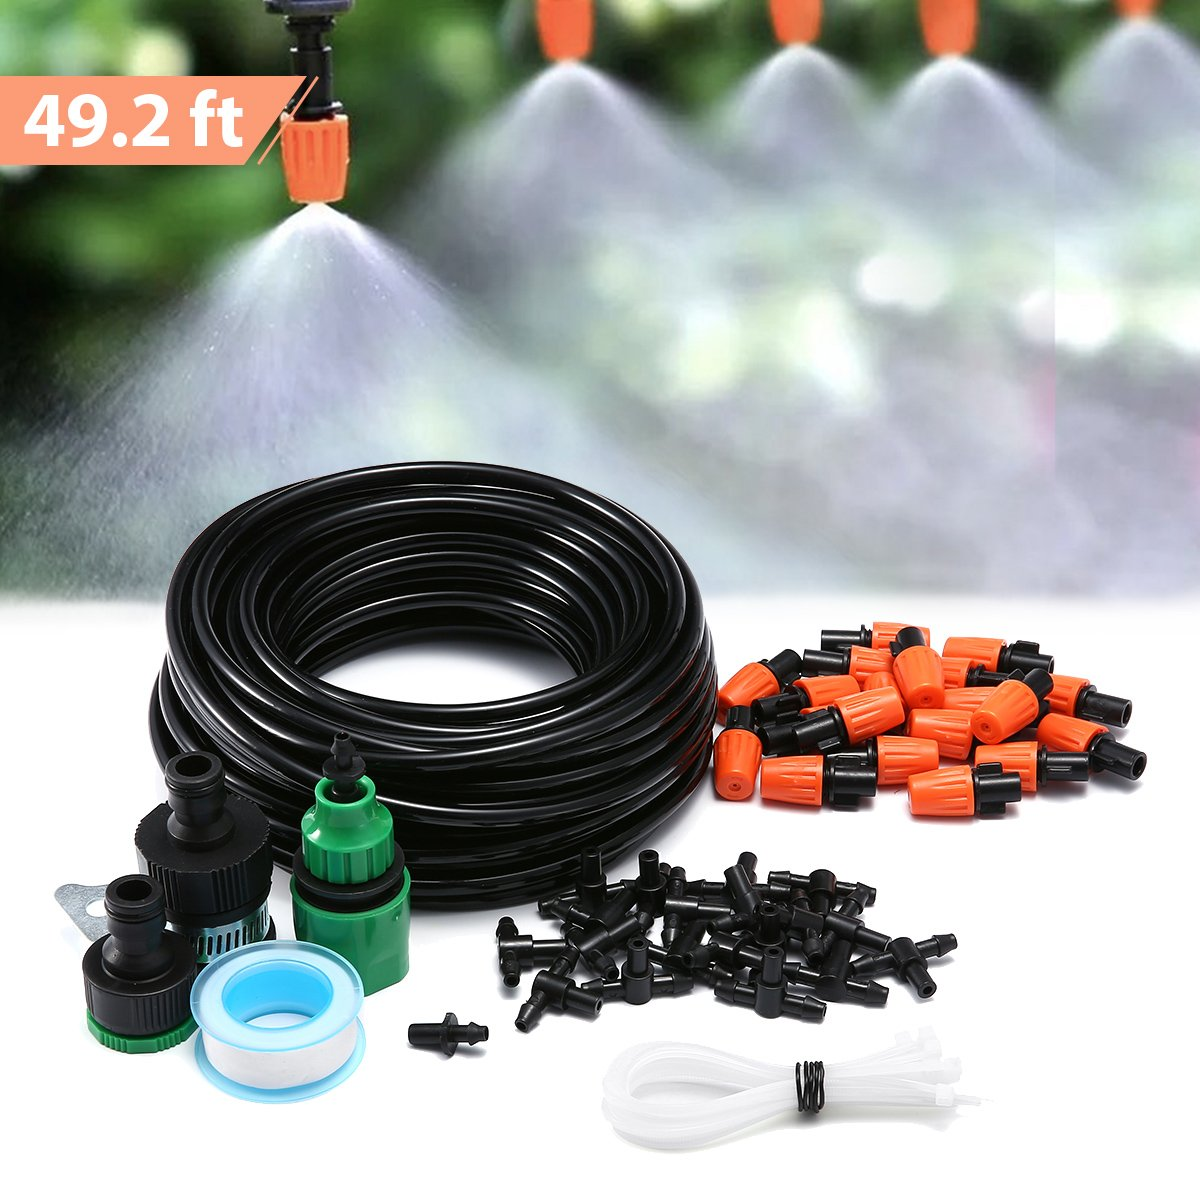 KINGSO Patio Spray Misters Watering System Kits Accessories for Outdoor Garden Greenhouse Nozzles Misting Cooling With 49.2ft, 4/7 Blank Distribution Tubing Hose, Instruction